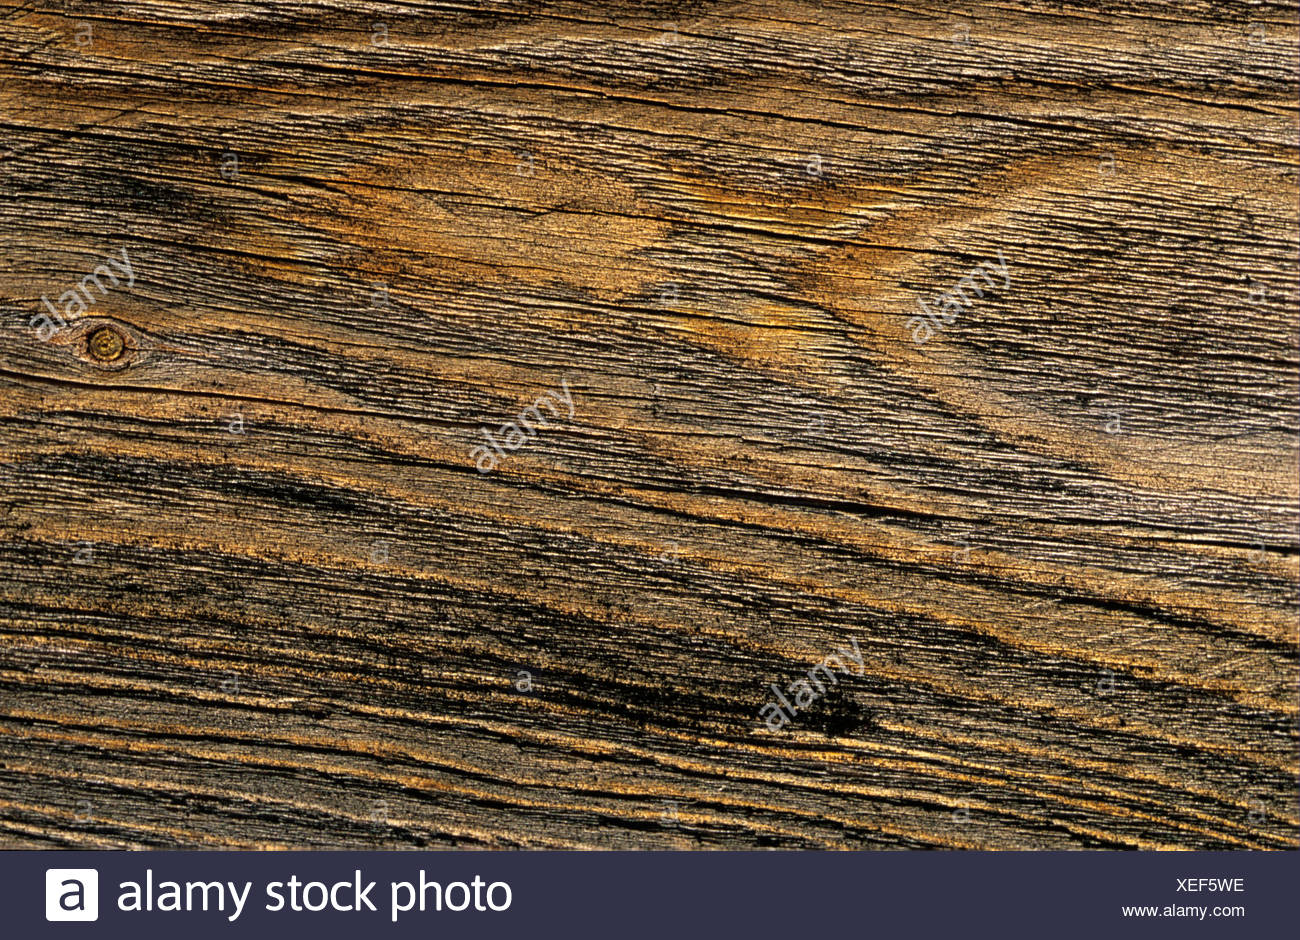 Weathered, cracked board, knotted wood - Stock Image